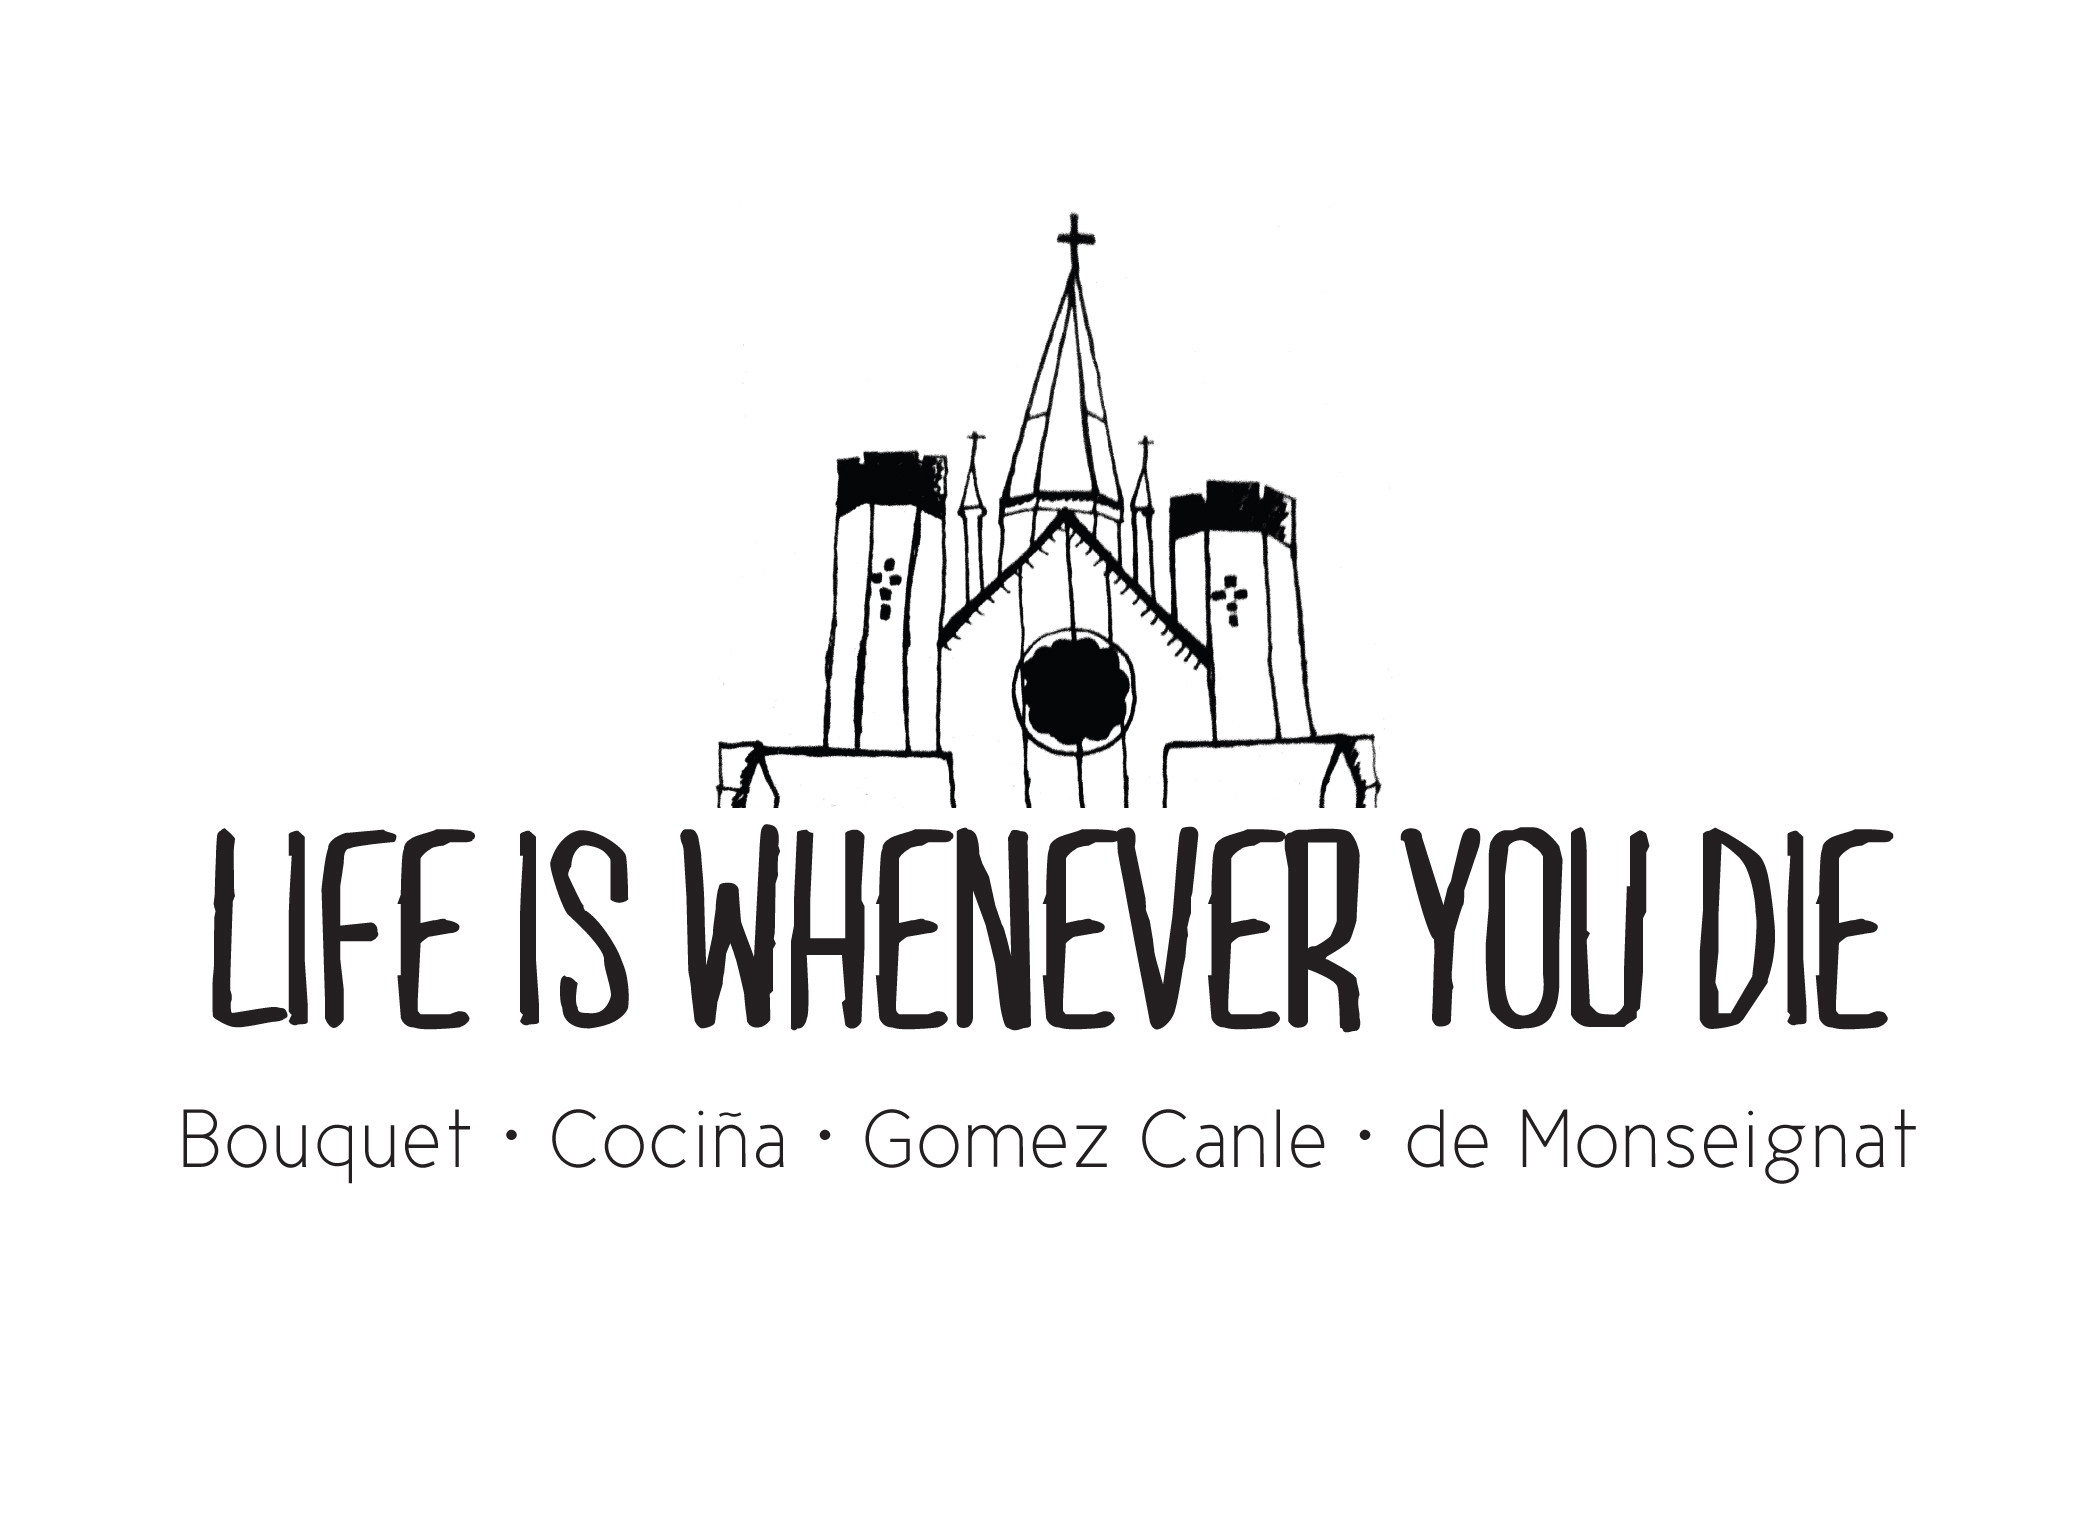 LIFE IS WHENEVER YOU DIE